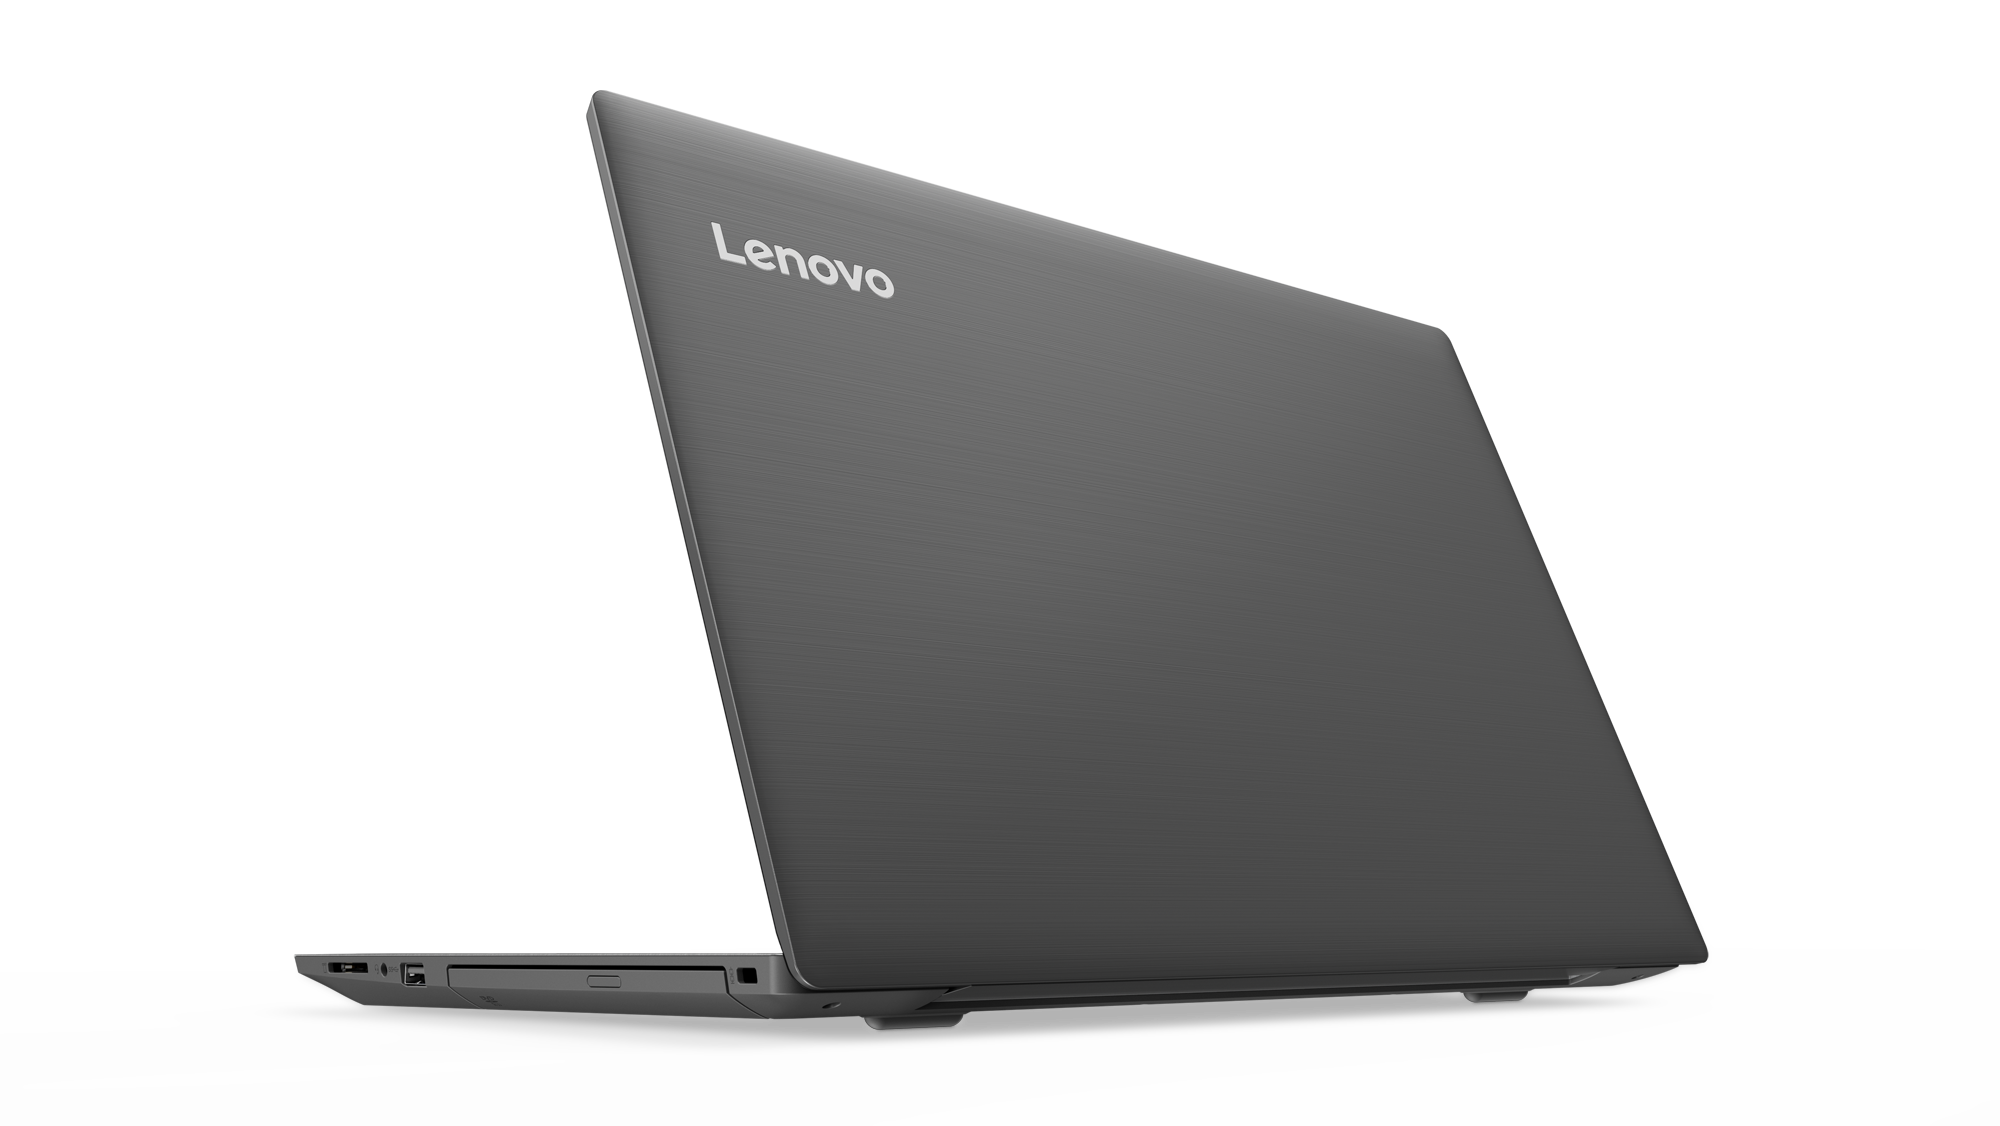 Lenovo V330-15IKB Intel Core i5-8250U (1.60 GHz up to 3.40 G